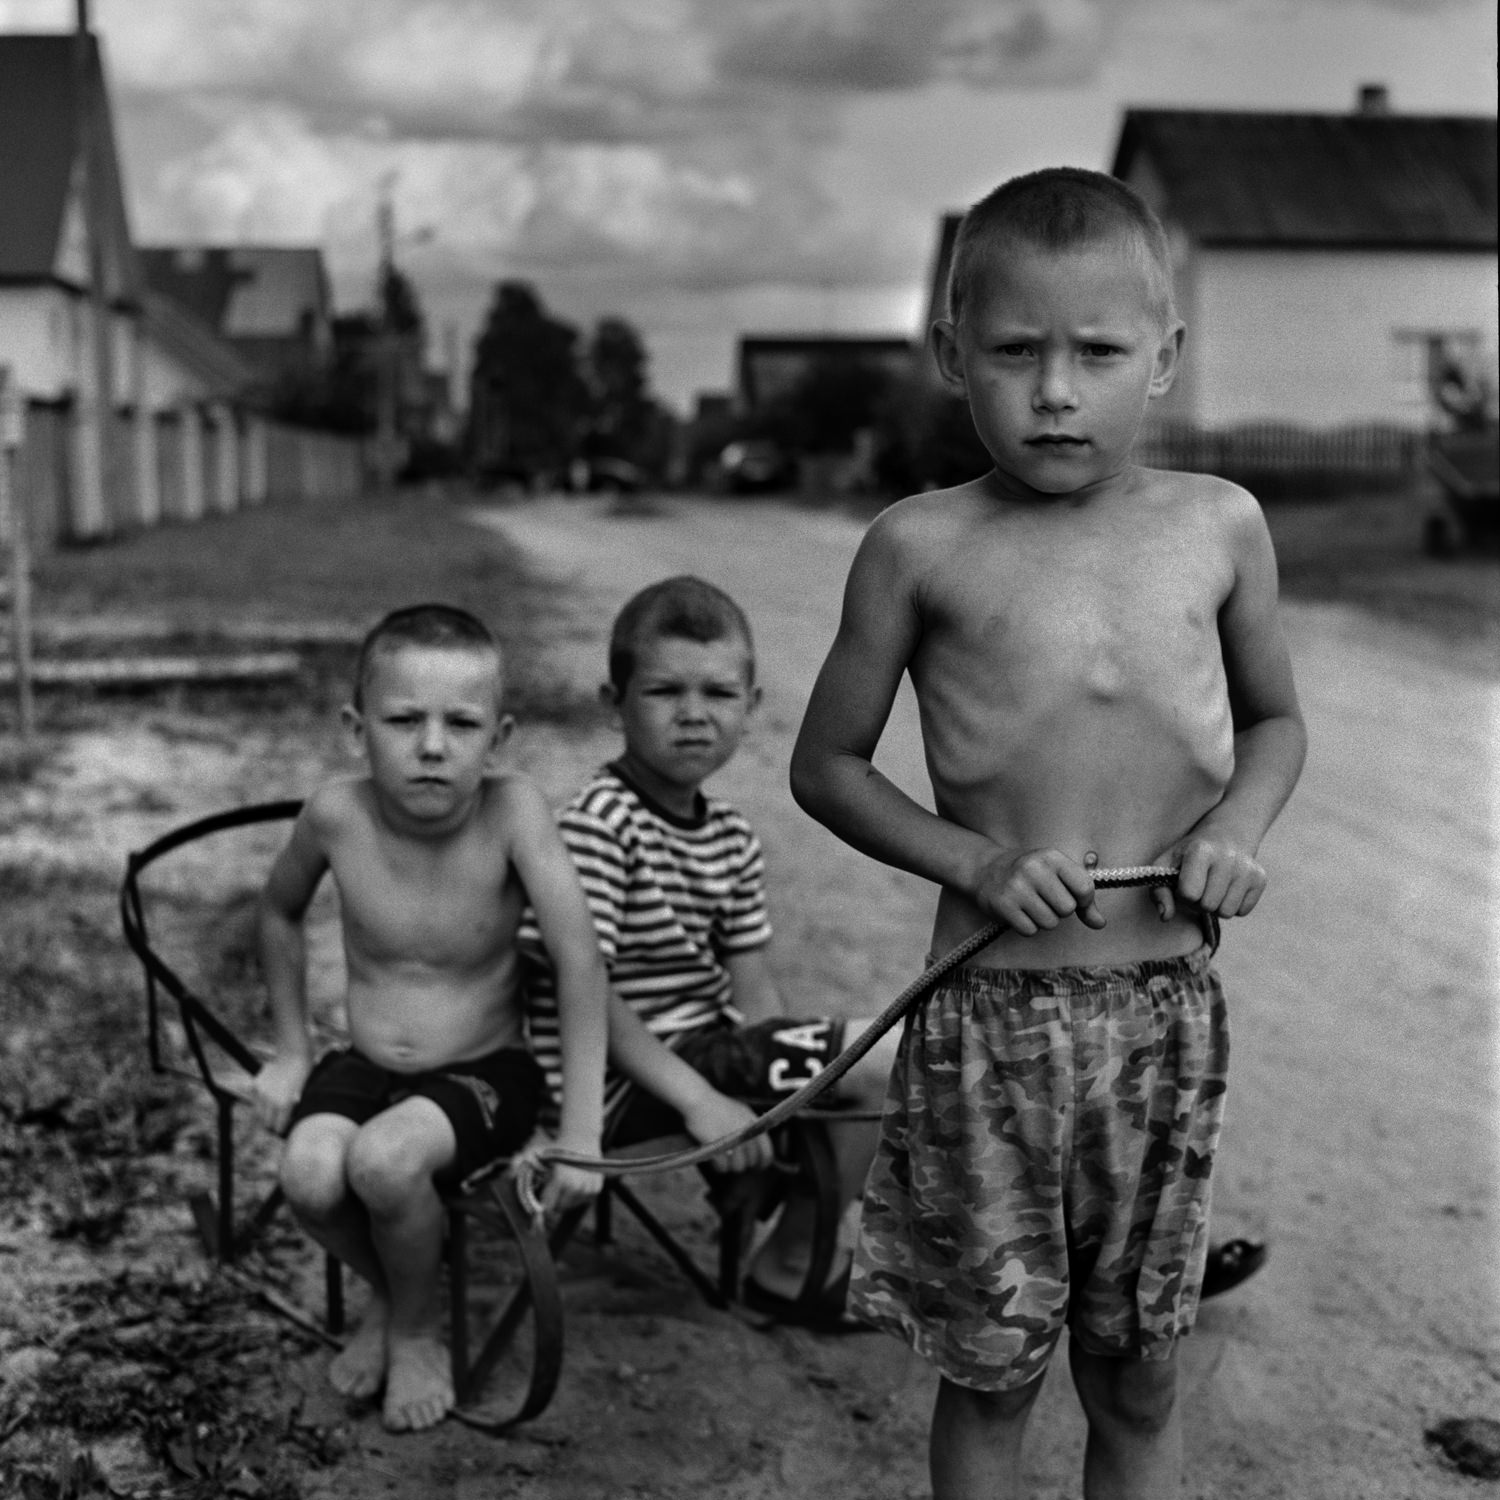 Documentary street portrait of three naked boys on countryside road with sled taken on Bronica SQ-Ai medium format camera and blac-and-white film